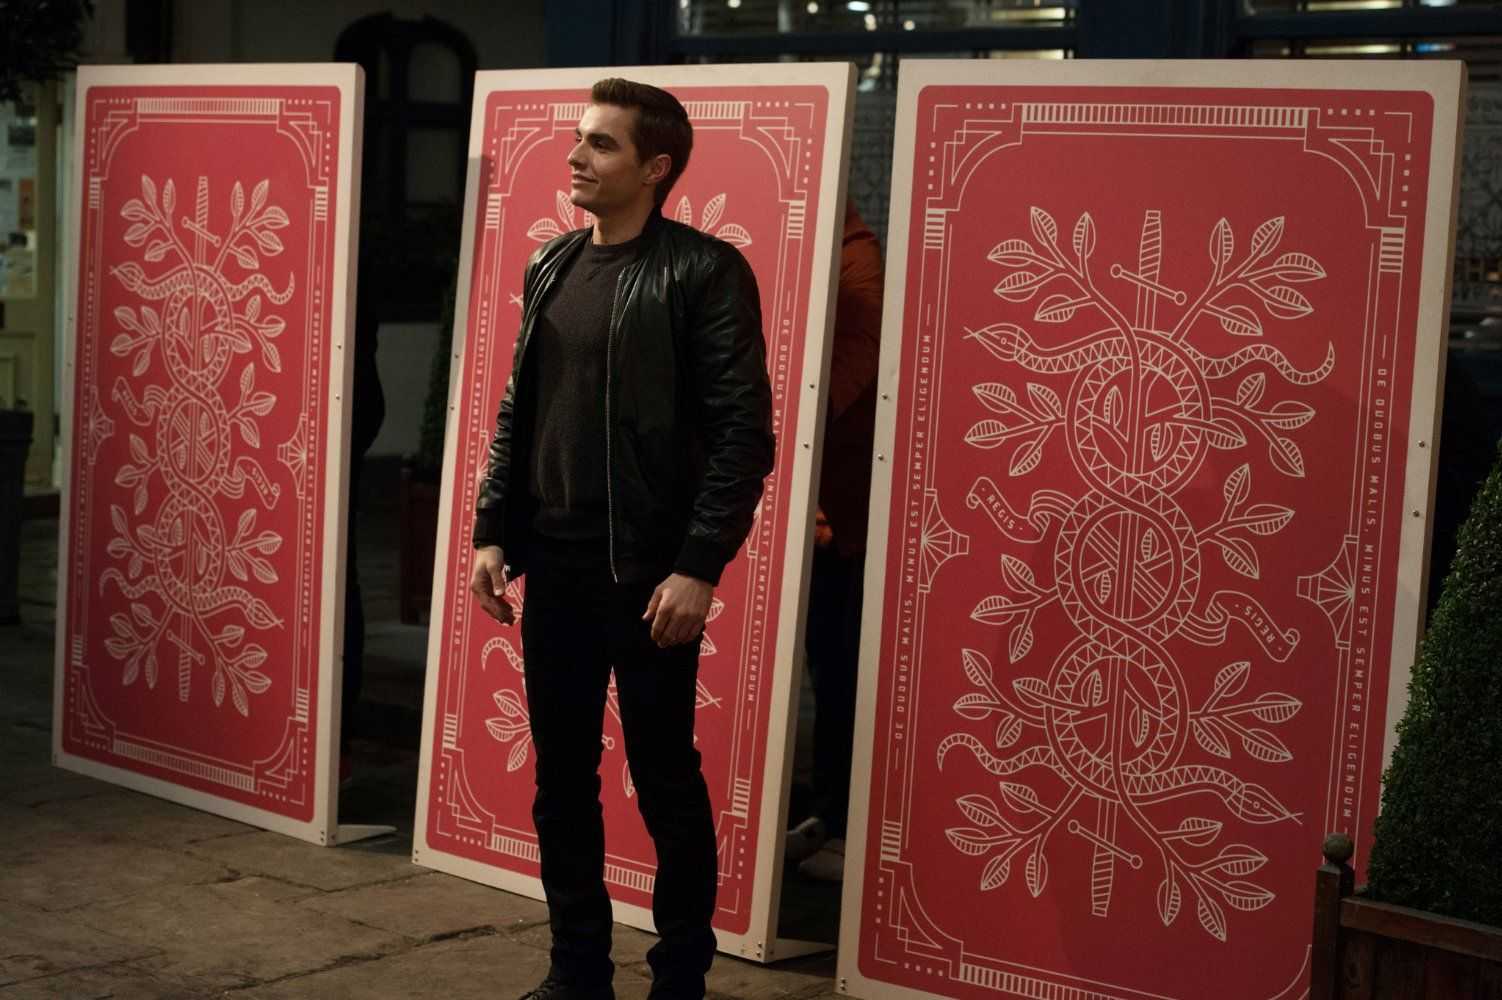 #franco #image #dave #now #you #see #of #in #meImage of Dave Franco in Now You See Me 2